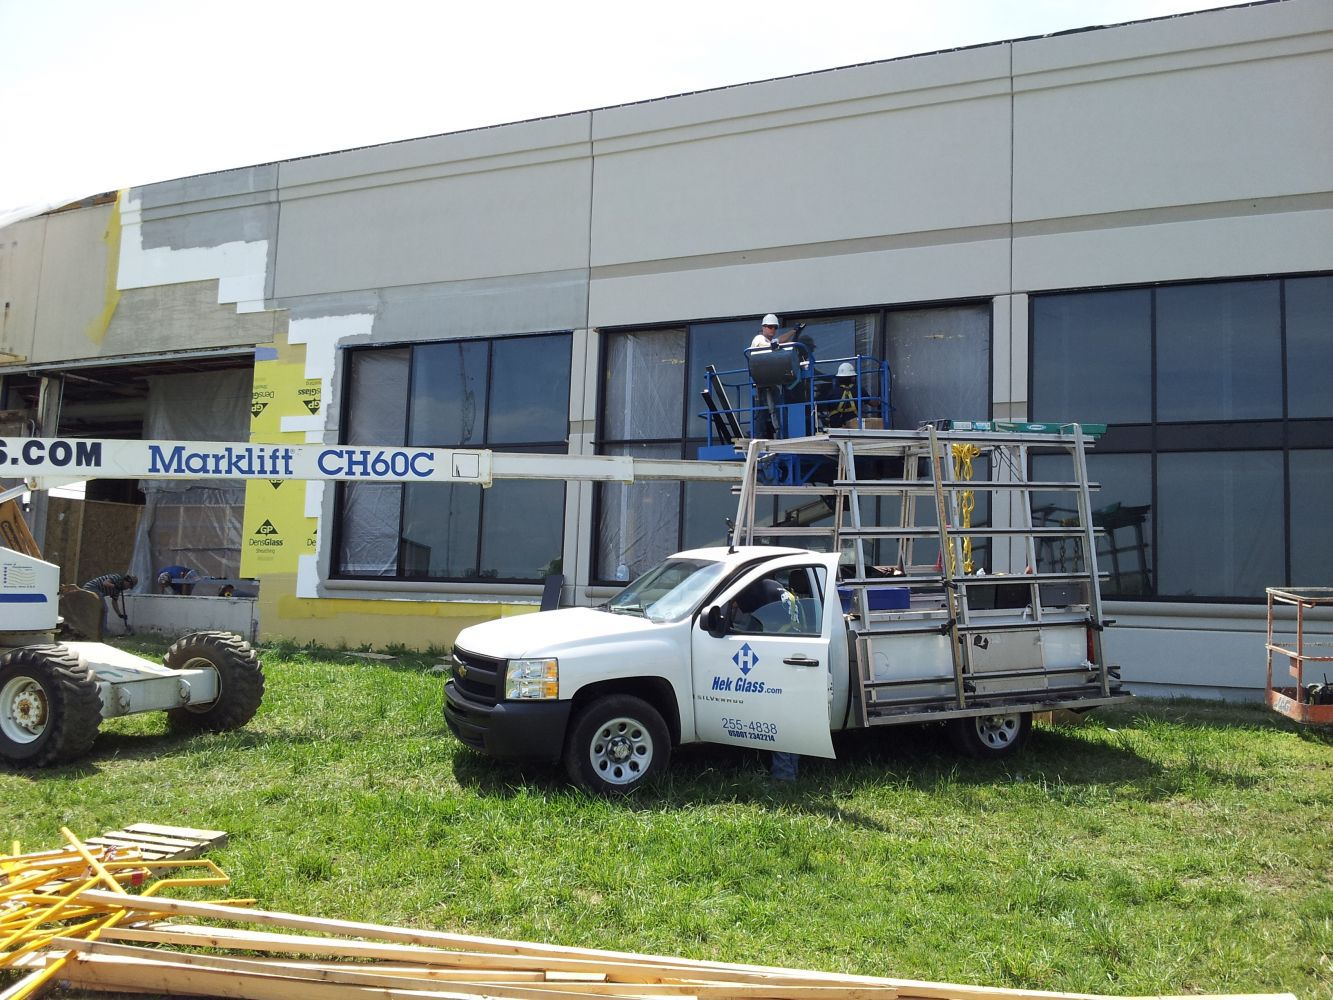 A member of an experienced glass replacement team in Lexington, KY